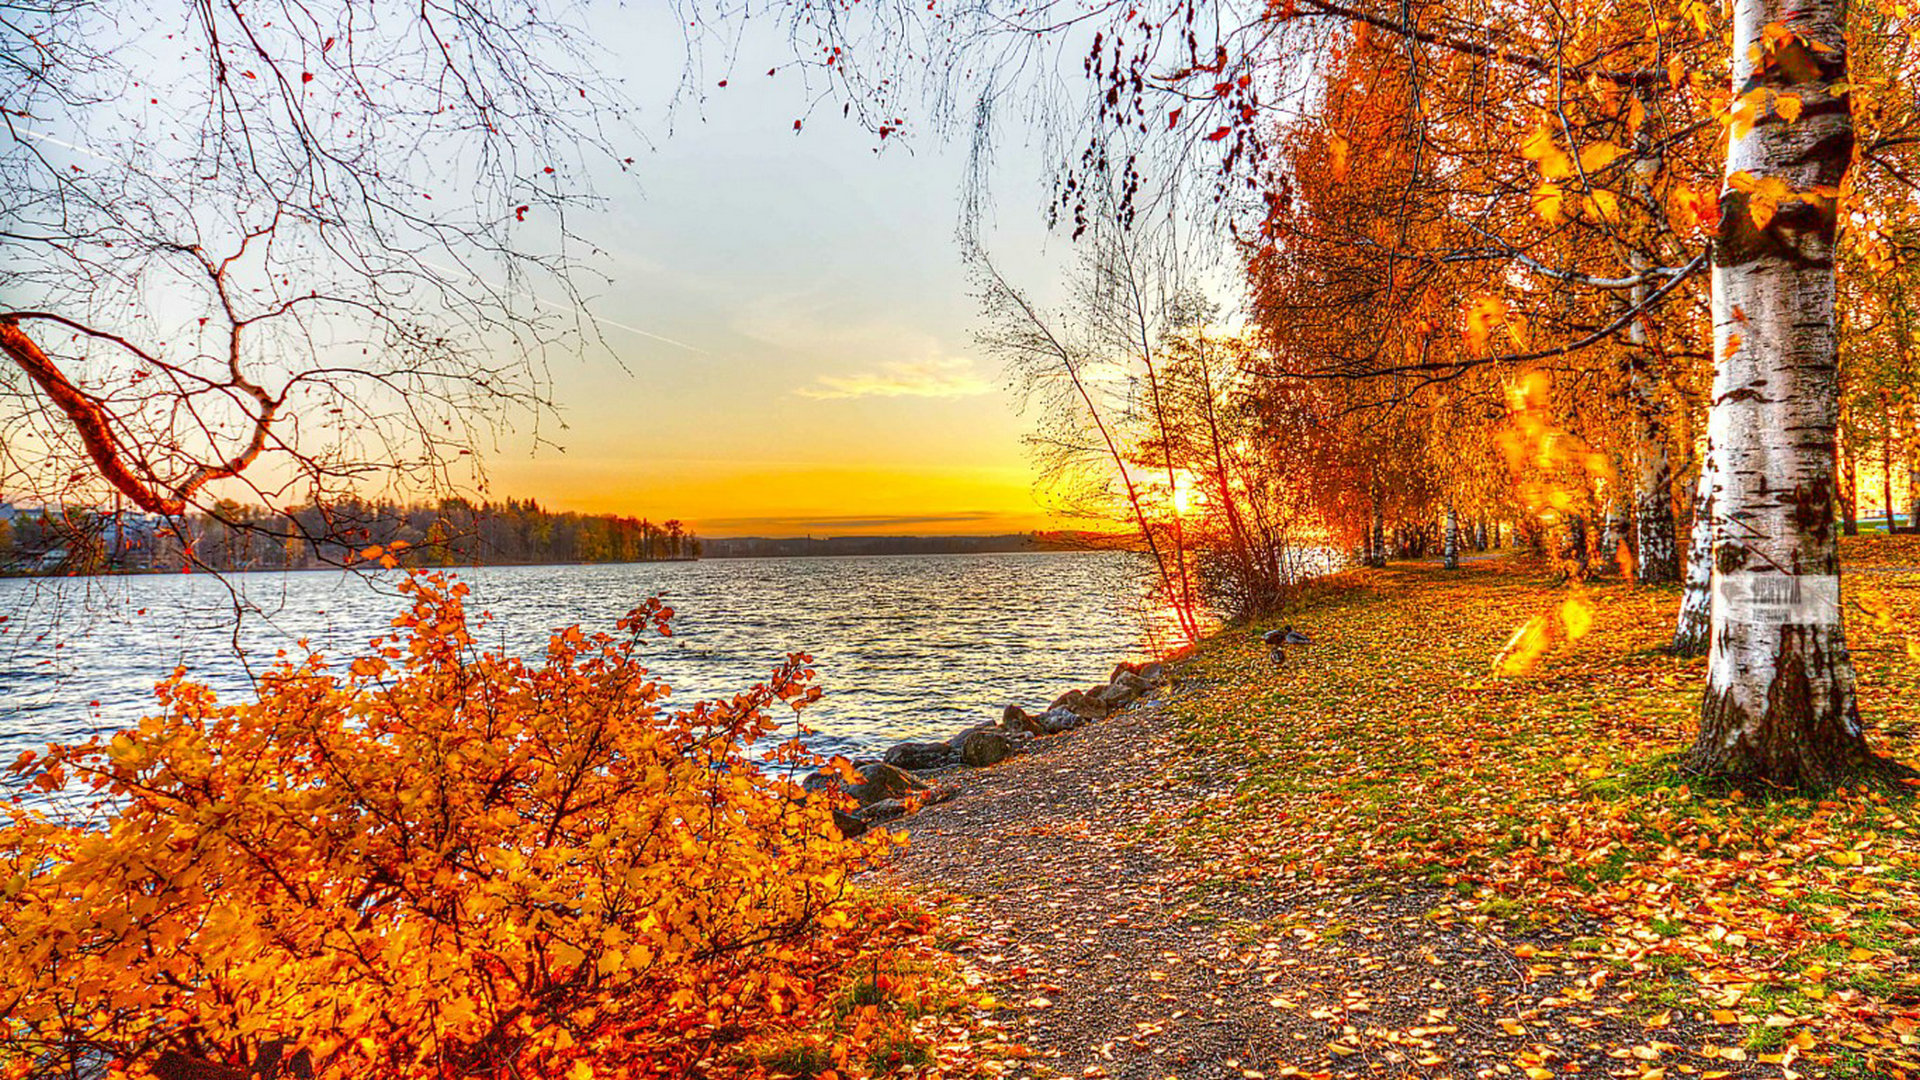 Sunset Autumn Lake Hd Wallpaper 1920x1080px